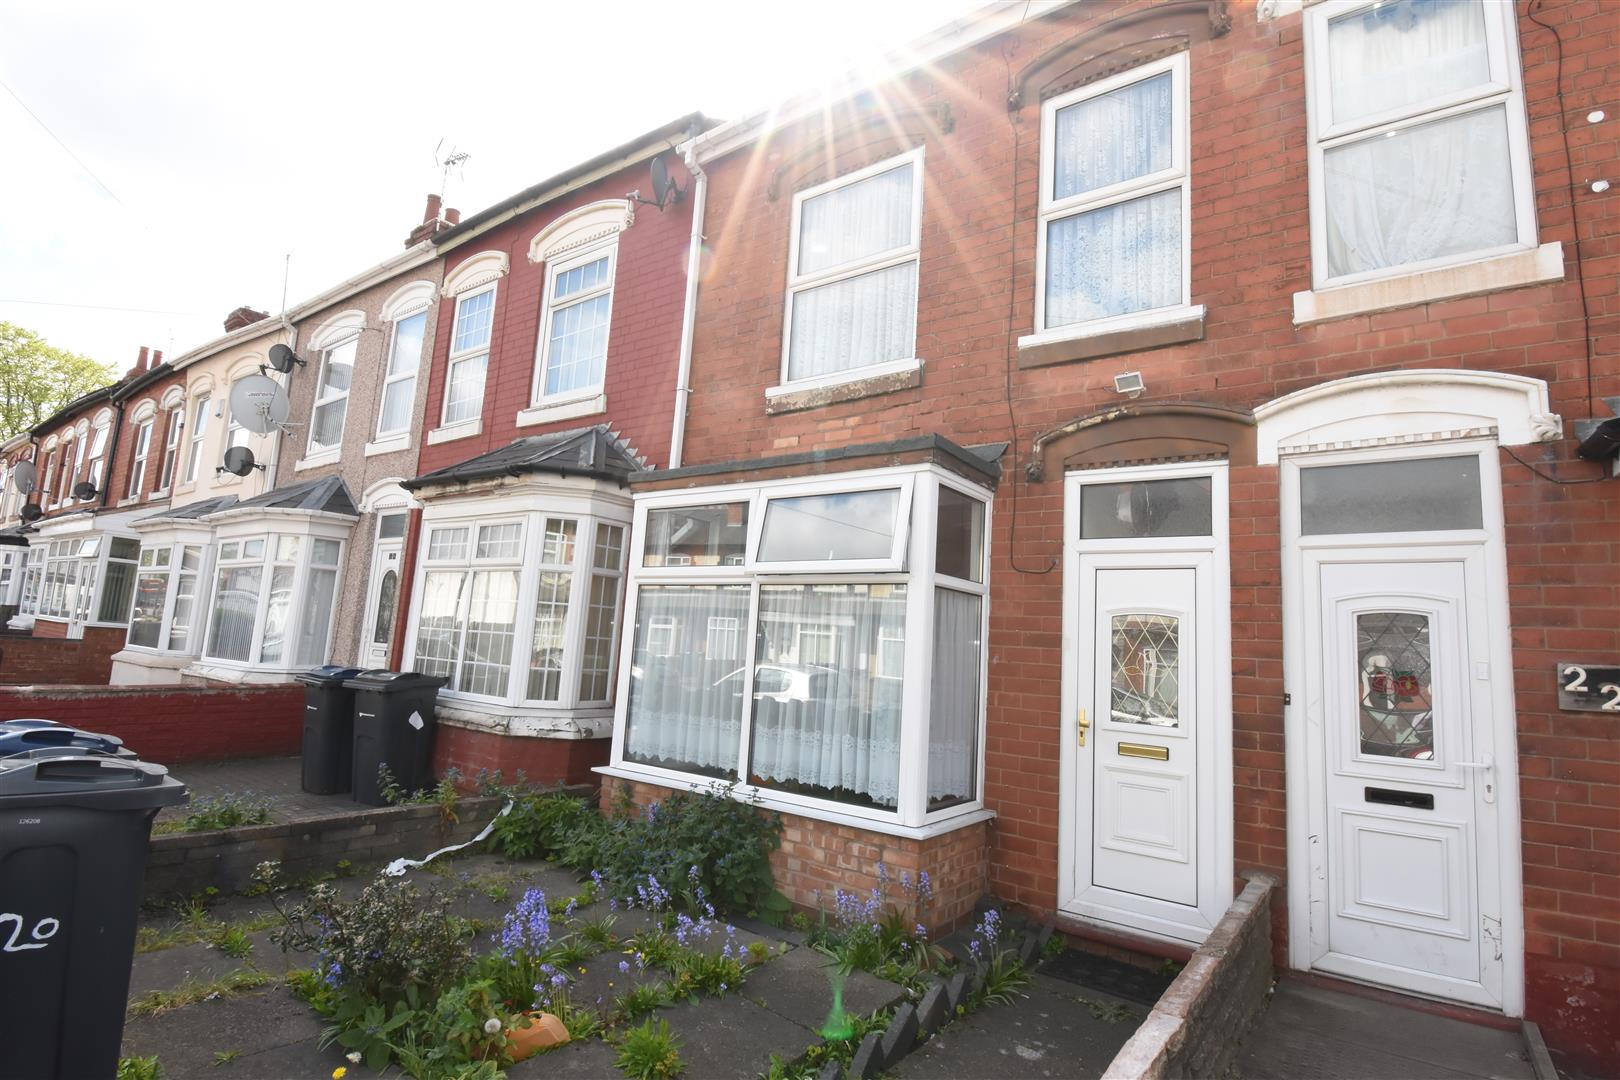 3 bed house for sale in Southern Road, Ward End, Birmingham - Property Image 1